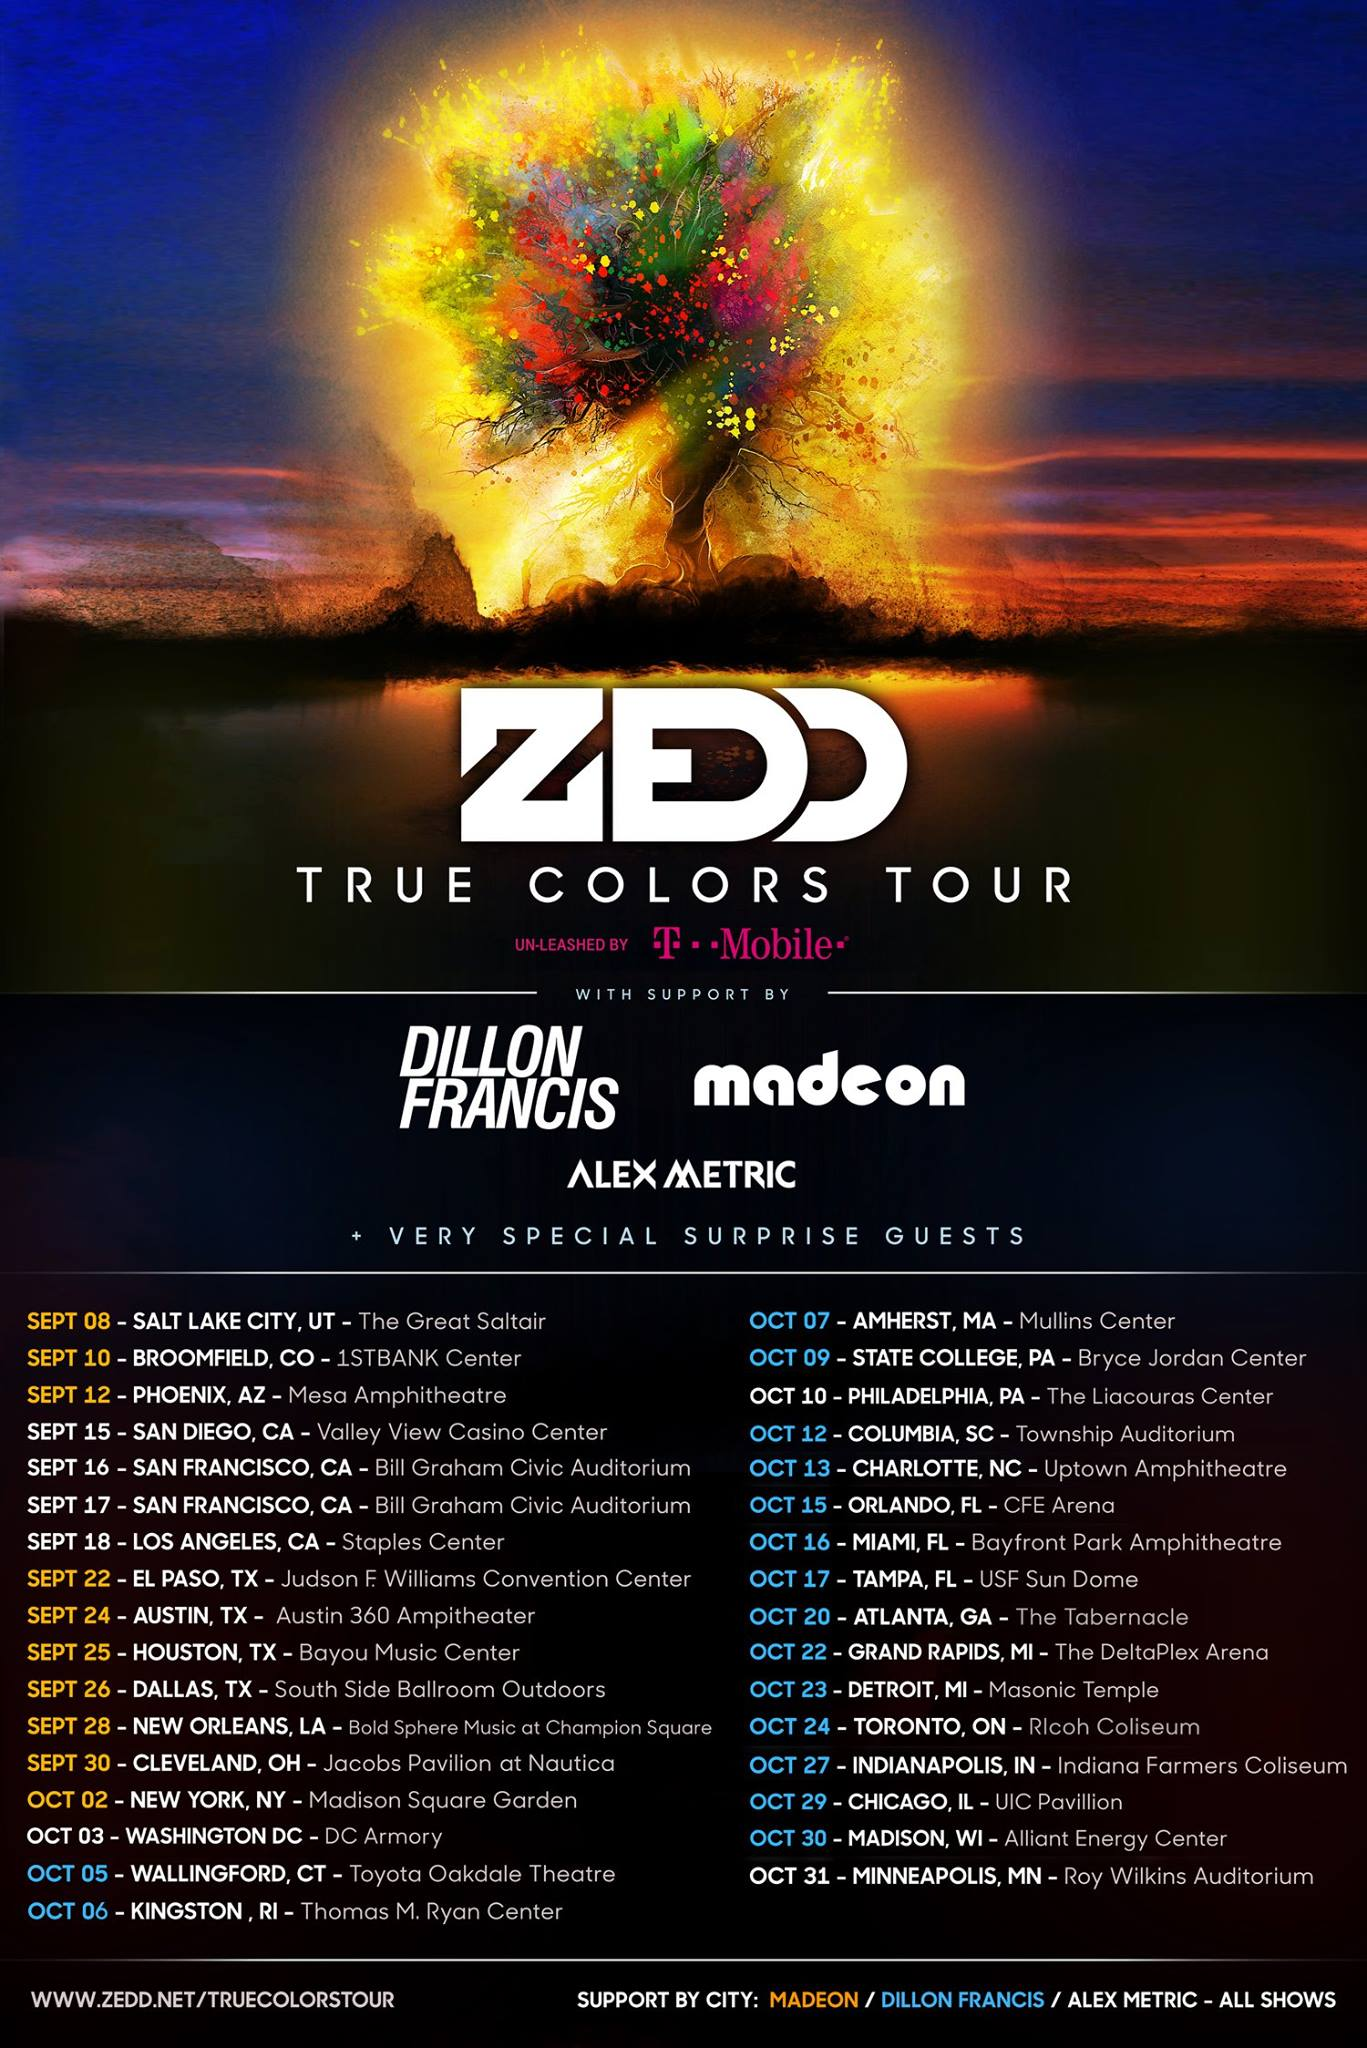 ZEDD schedule SEP OCT